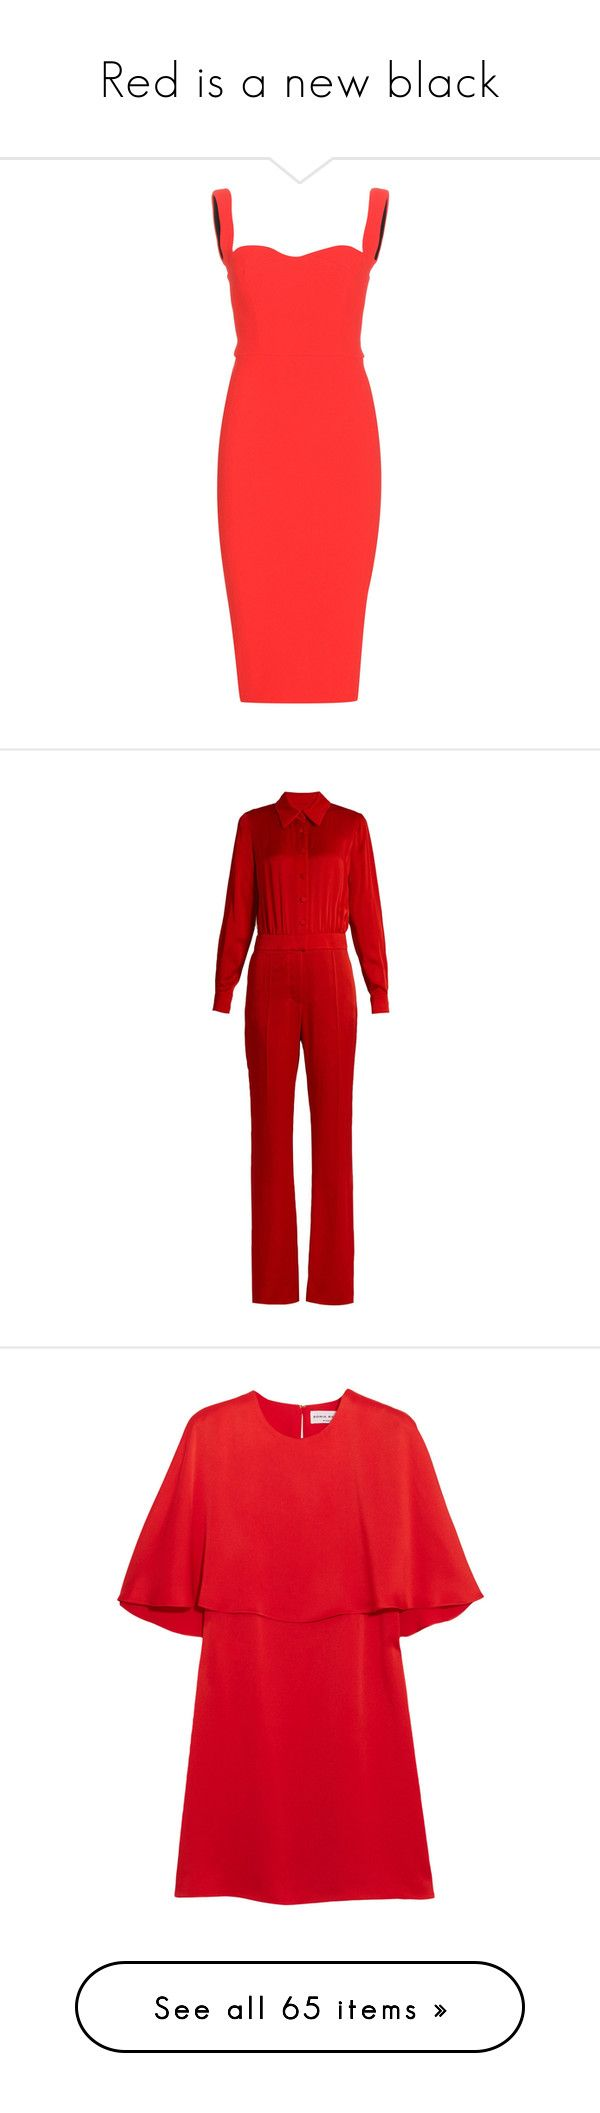 """""""Red is a new black"""" by renesmi ❤ liked on Polyvore featuring red, RedLove, dresses, victoria beckham, vestidos, red camisole, camisole dress, fitted dresses, red cami and jumpsuits"""